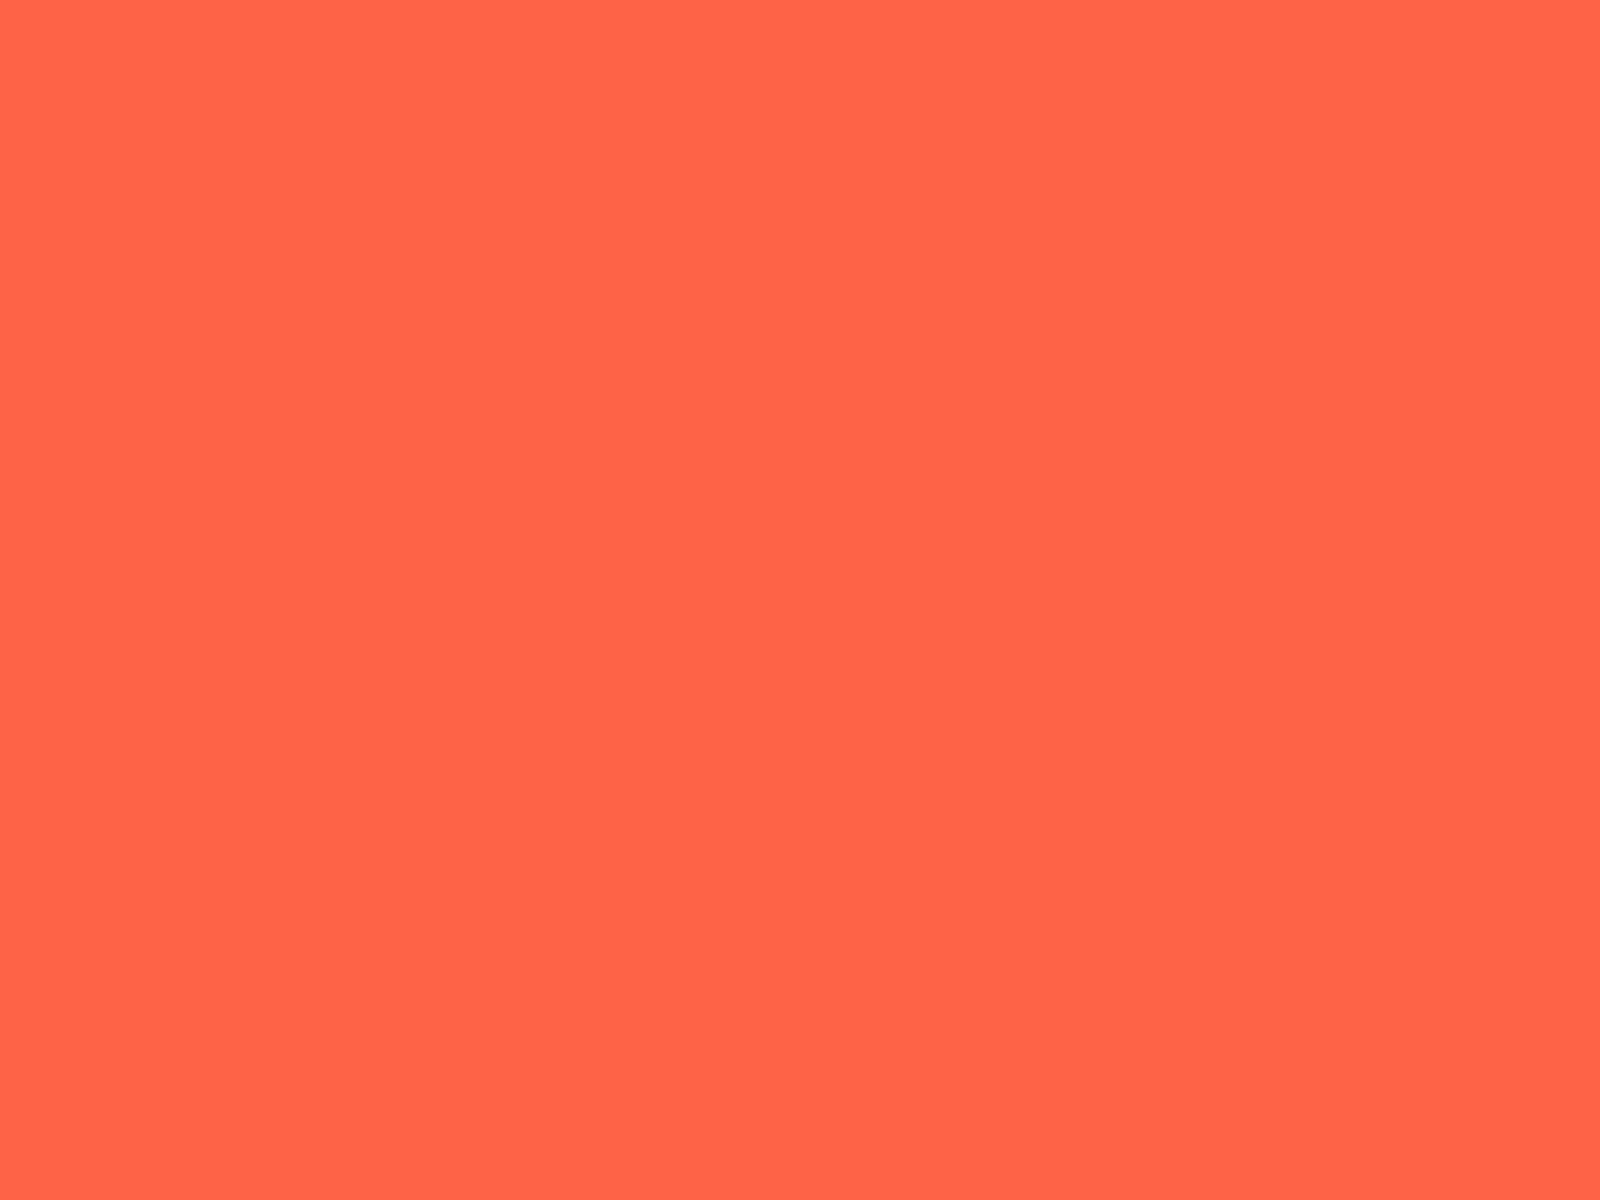 1600x1200 Tomato Solid Color Background